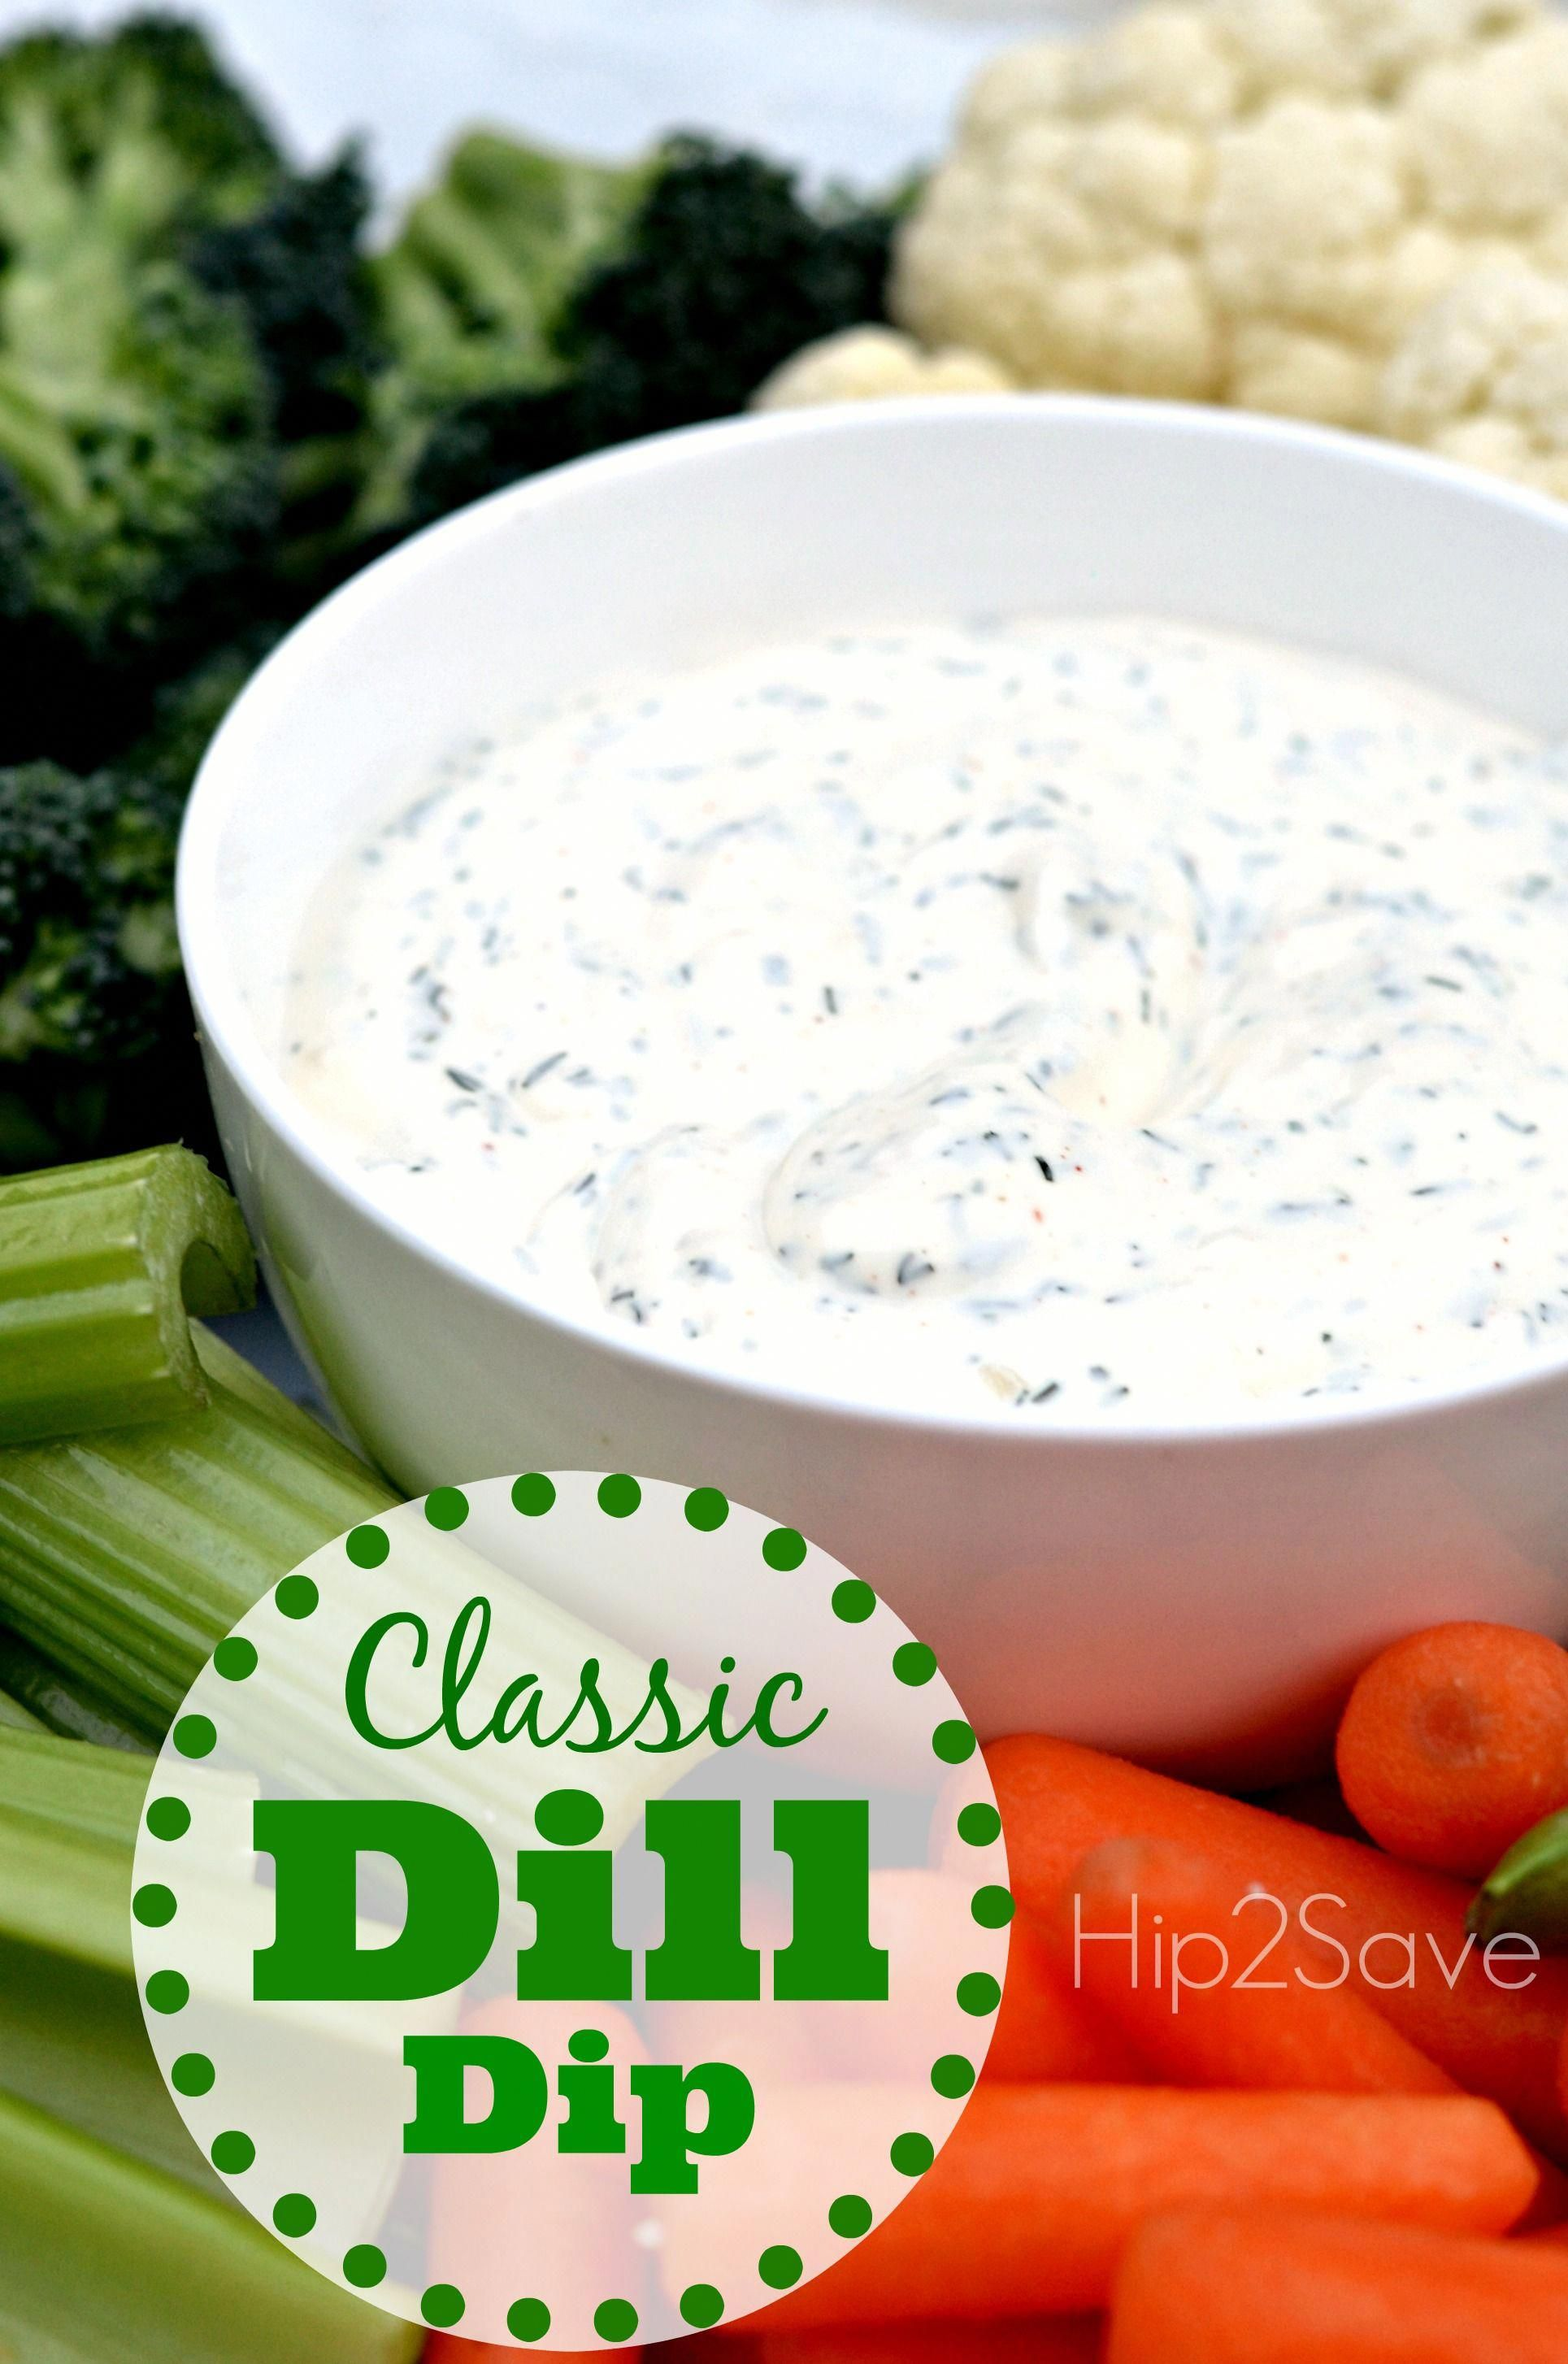 Classic Dill Dip Great Made 4 11 15 1 Cup Sour Cream 1 Cup Real Mayonnaise 3 Tablespoons White Onion Grated 1 Tabl In 2020 Dill Dip Recipes Dill Dip Appetizers Easy